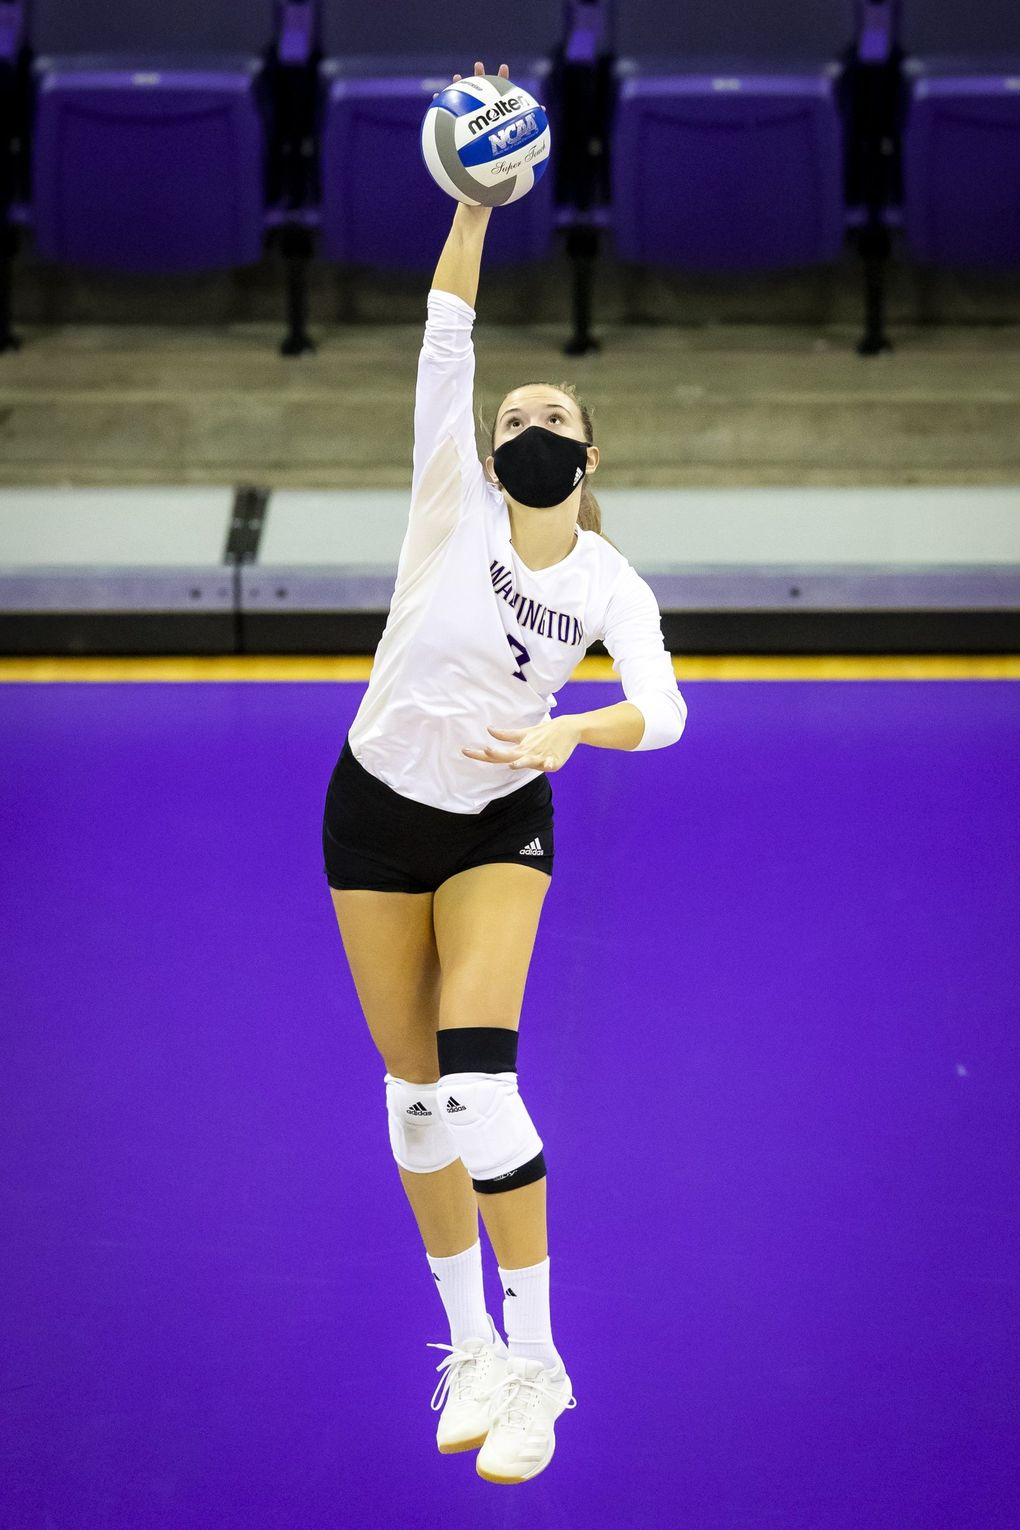 Washington setter Ella May Powell serves as the University of Washington Huskies take on the Oregon State Beavers for a volleyball game Saturday February 6, 2021 at Alaska Airlines Arena in Seattle. (Bettina Hansen / The Seattle Times)